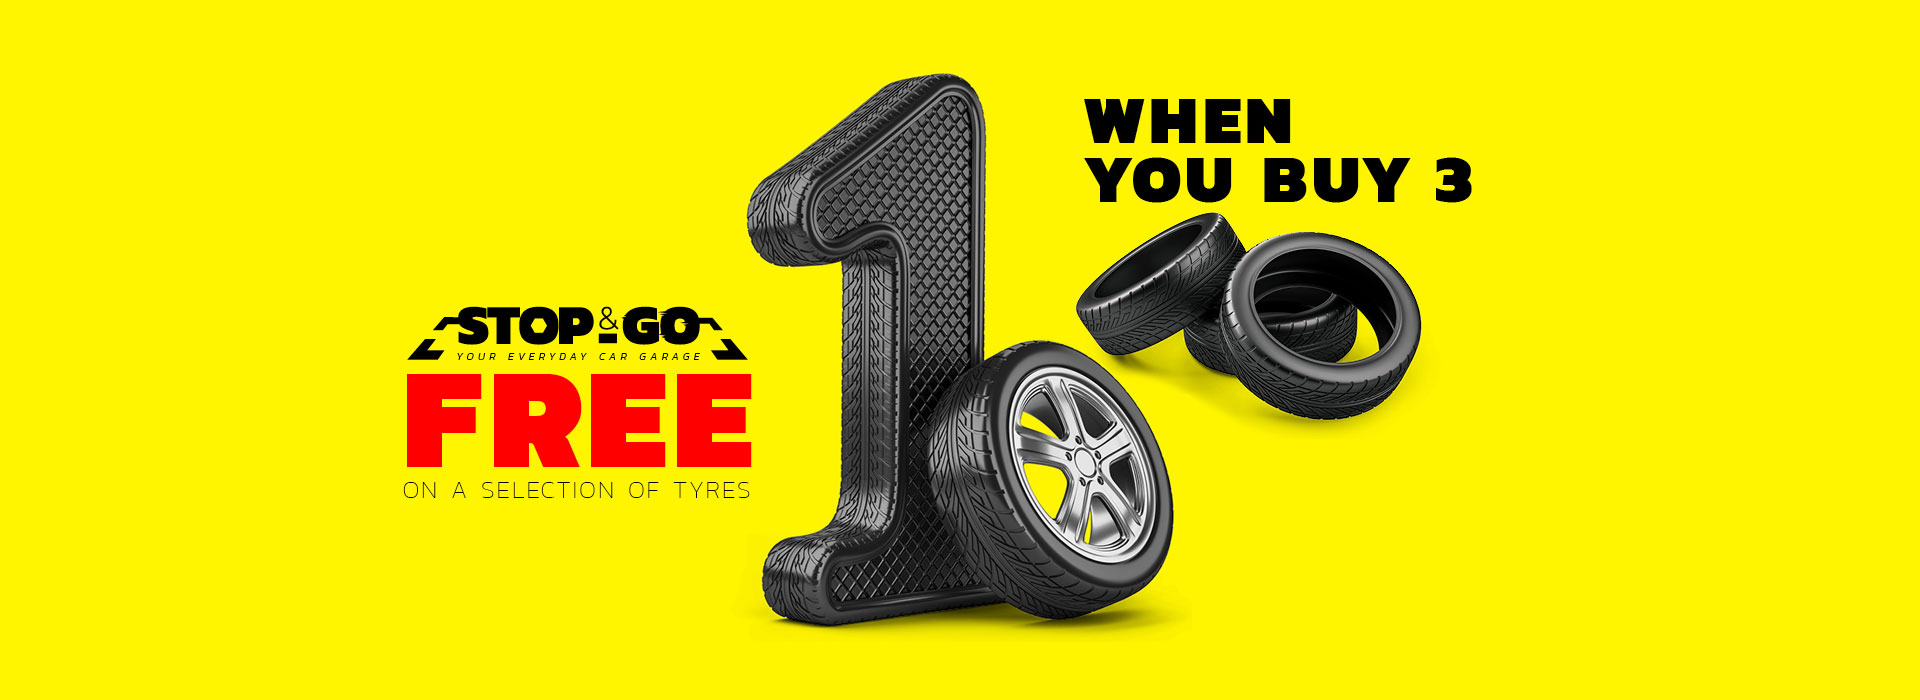 Buy 3 Get 1 Free on selected Tyres at Stop&Go